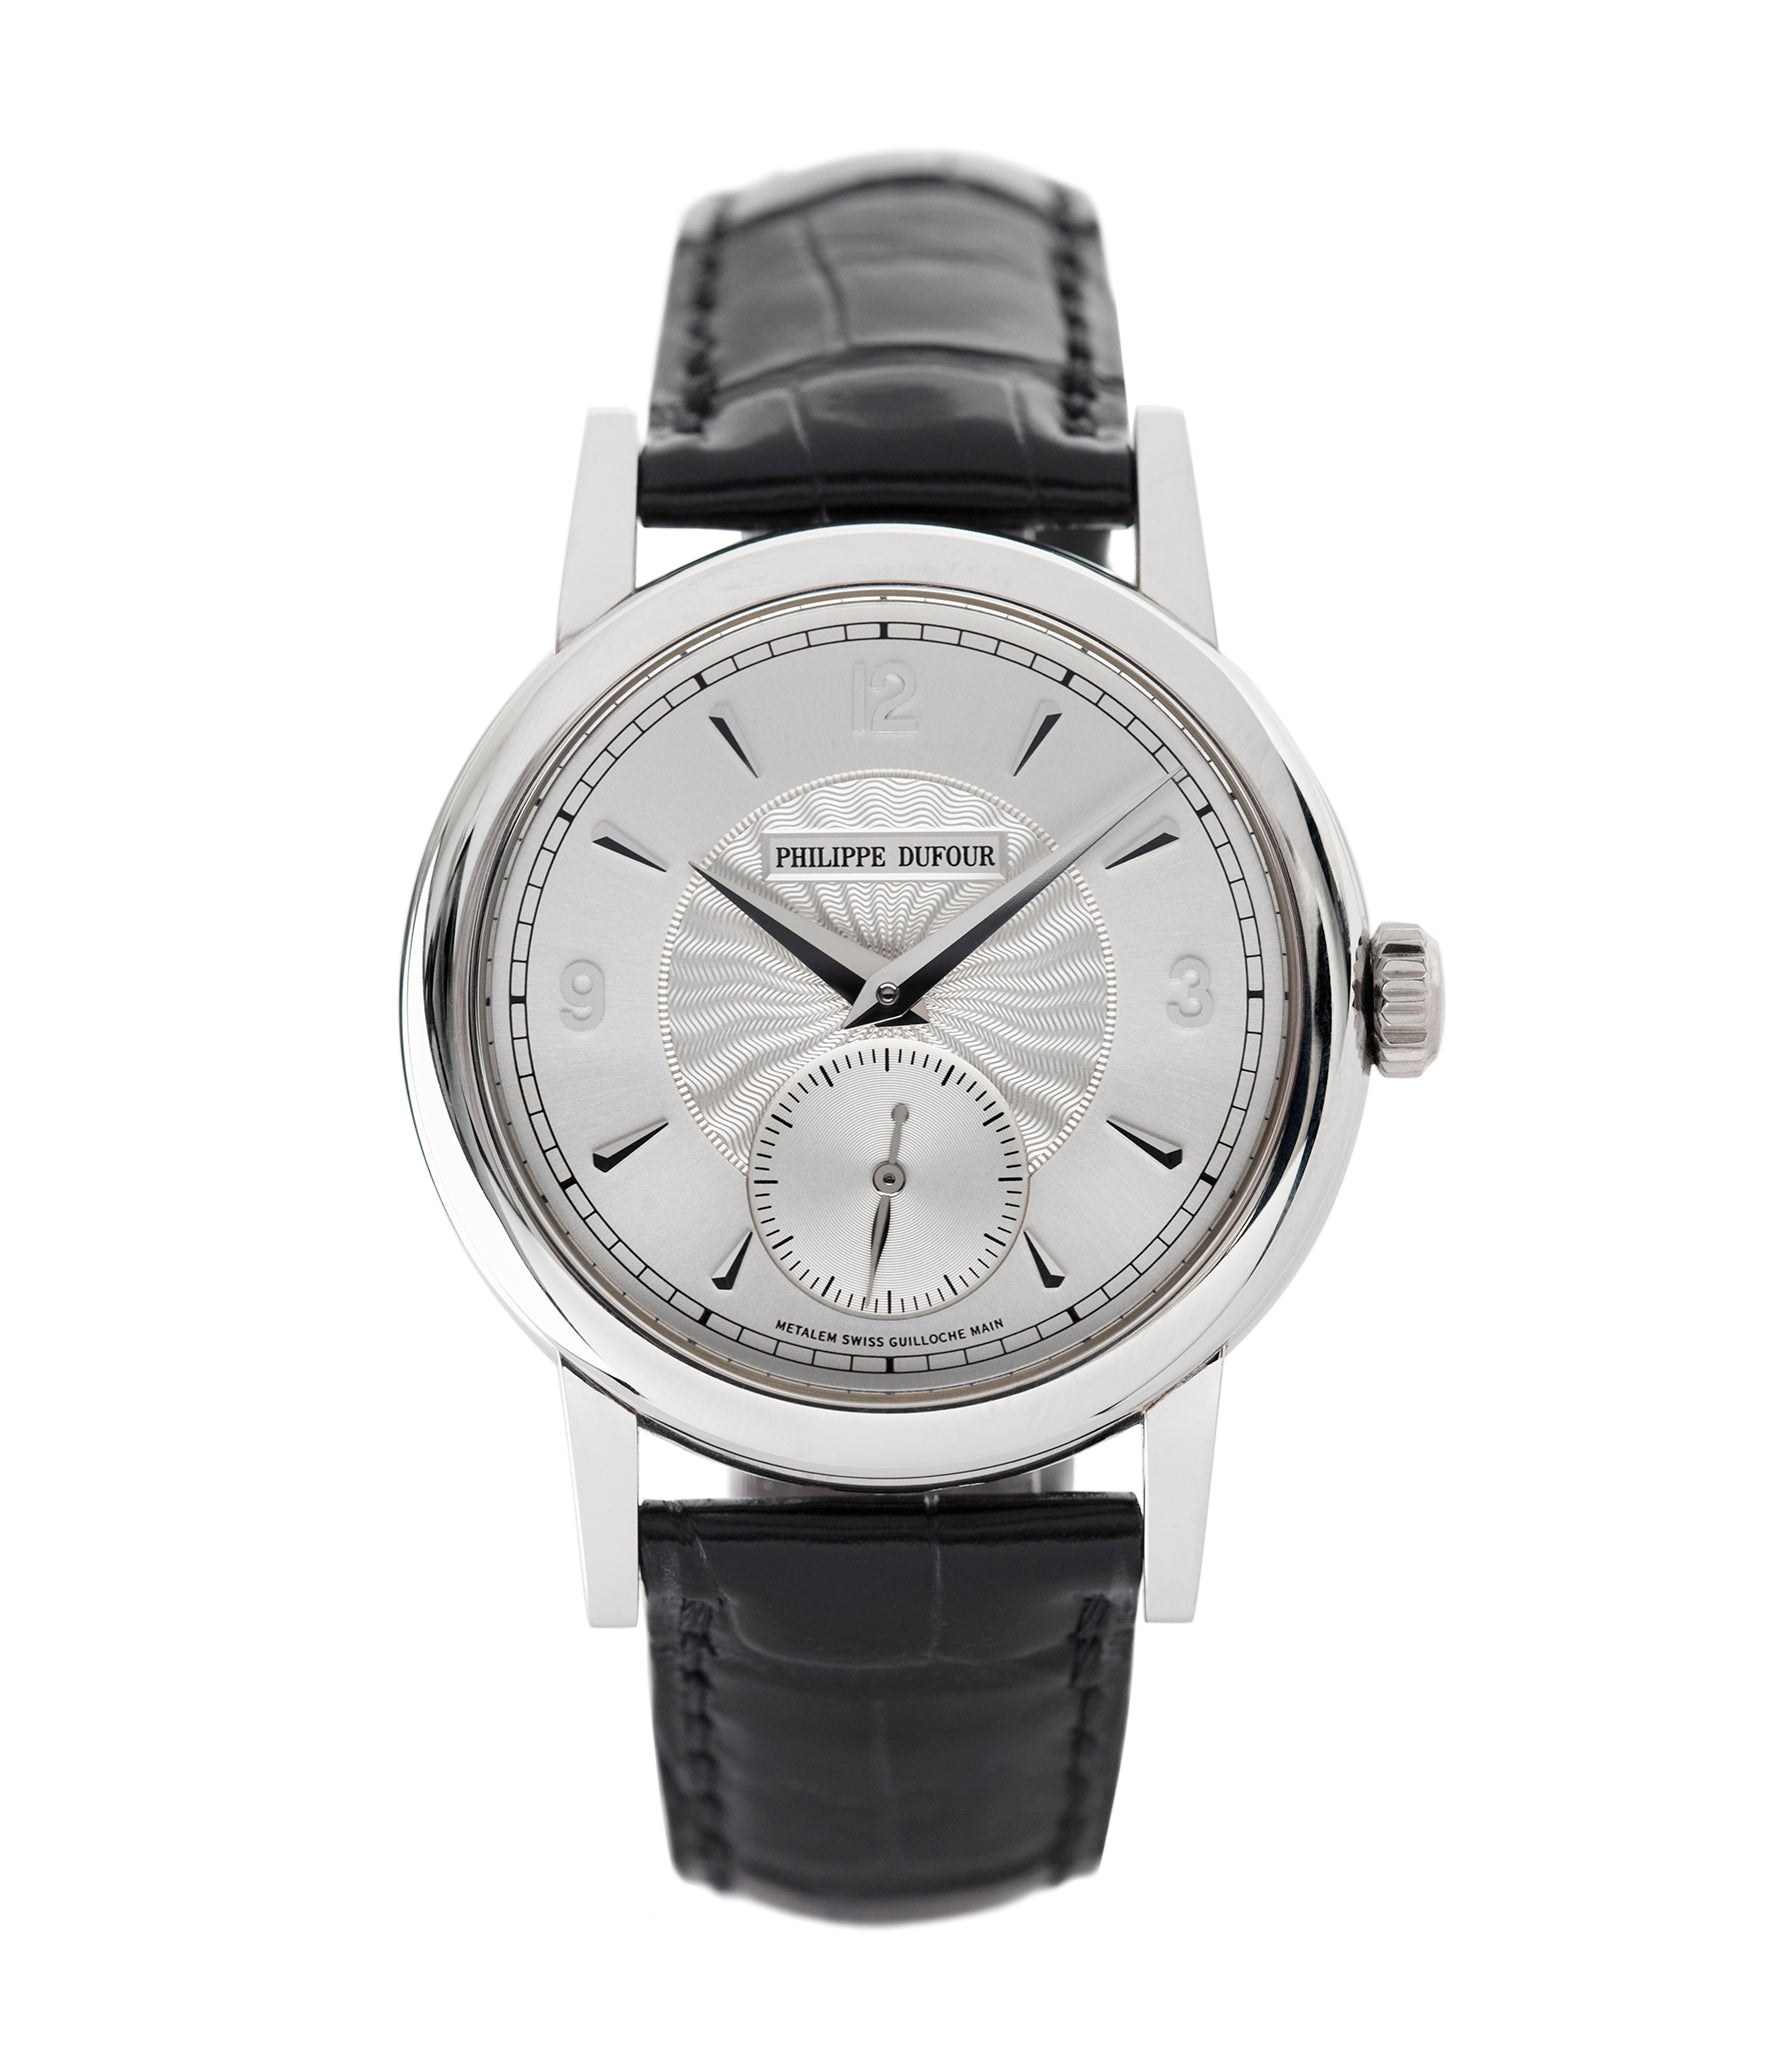 buy early Philippe Dufour Simplicity platinum time-only dress watch for sale online at A Collected Man London UK approved specialist of preowned independent watchmakers